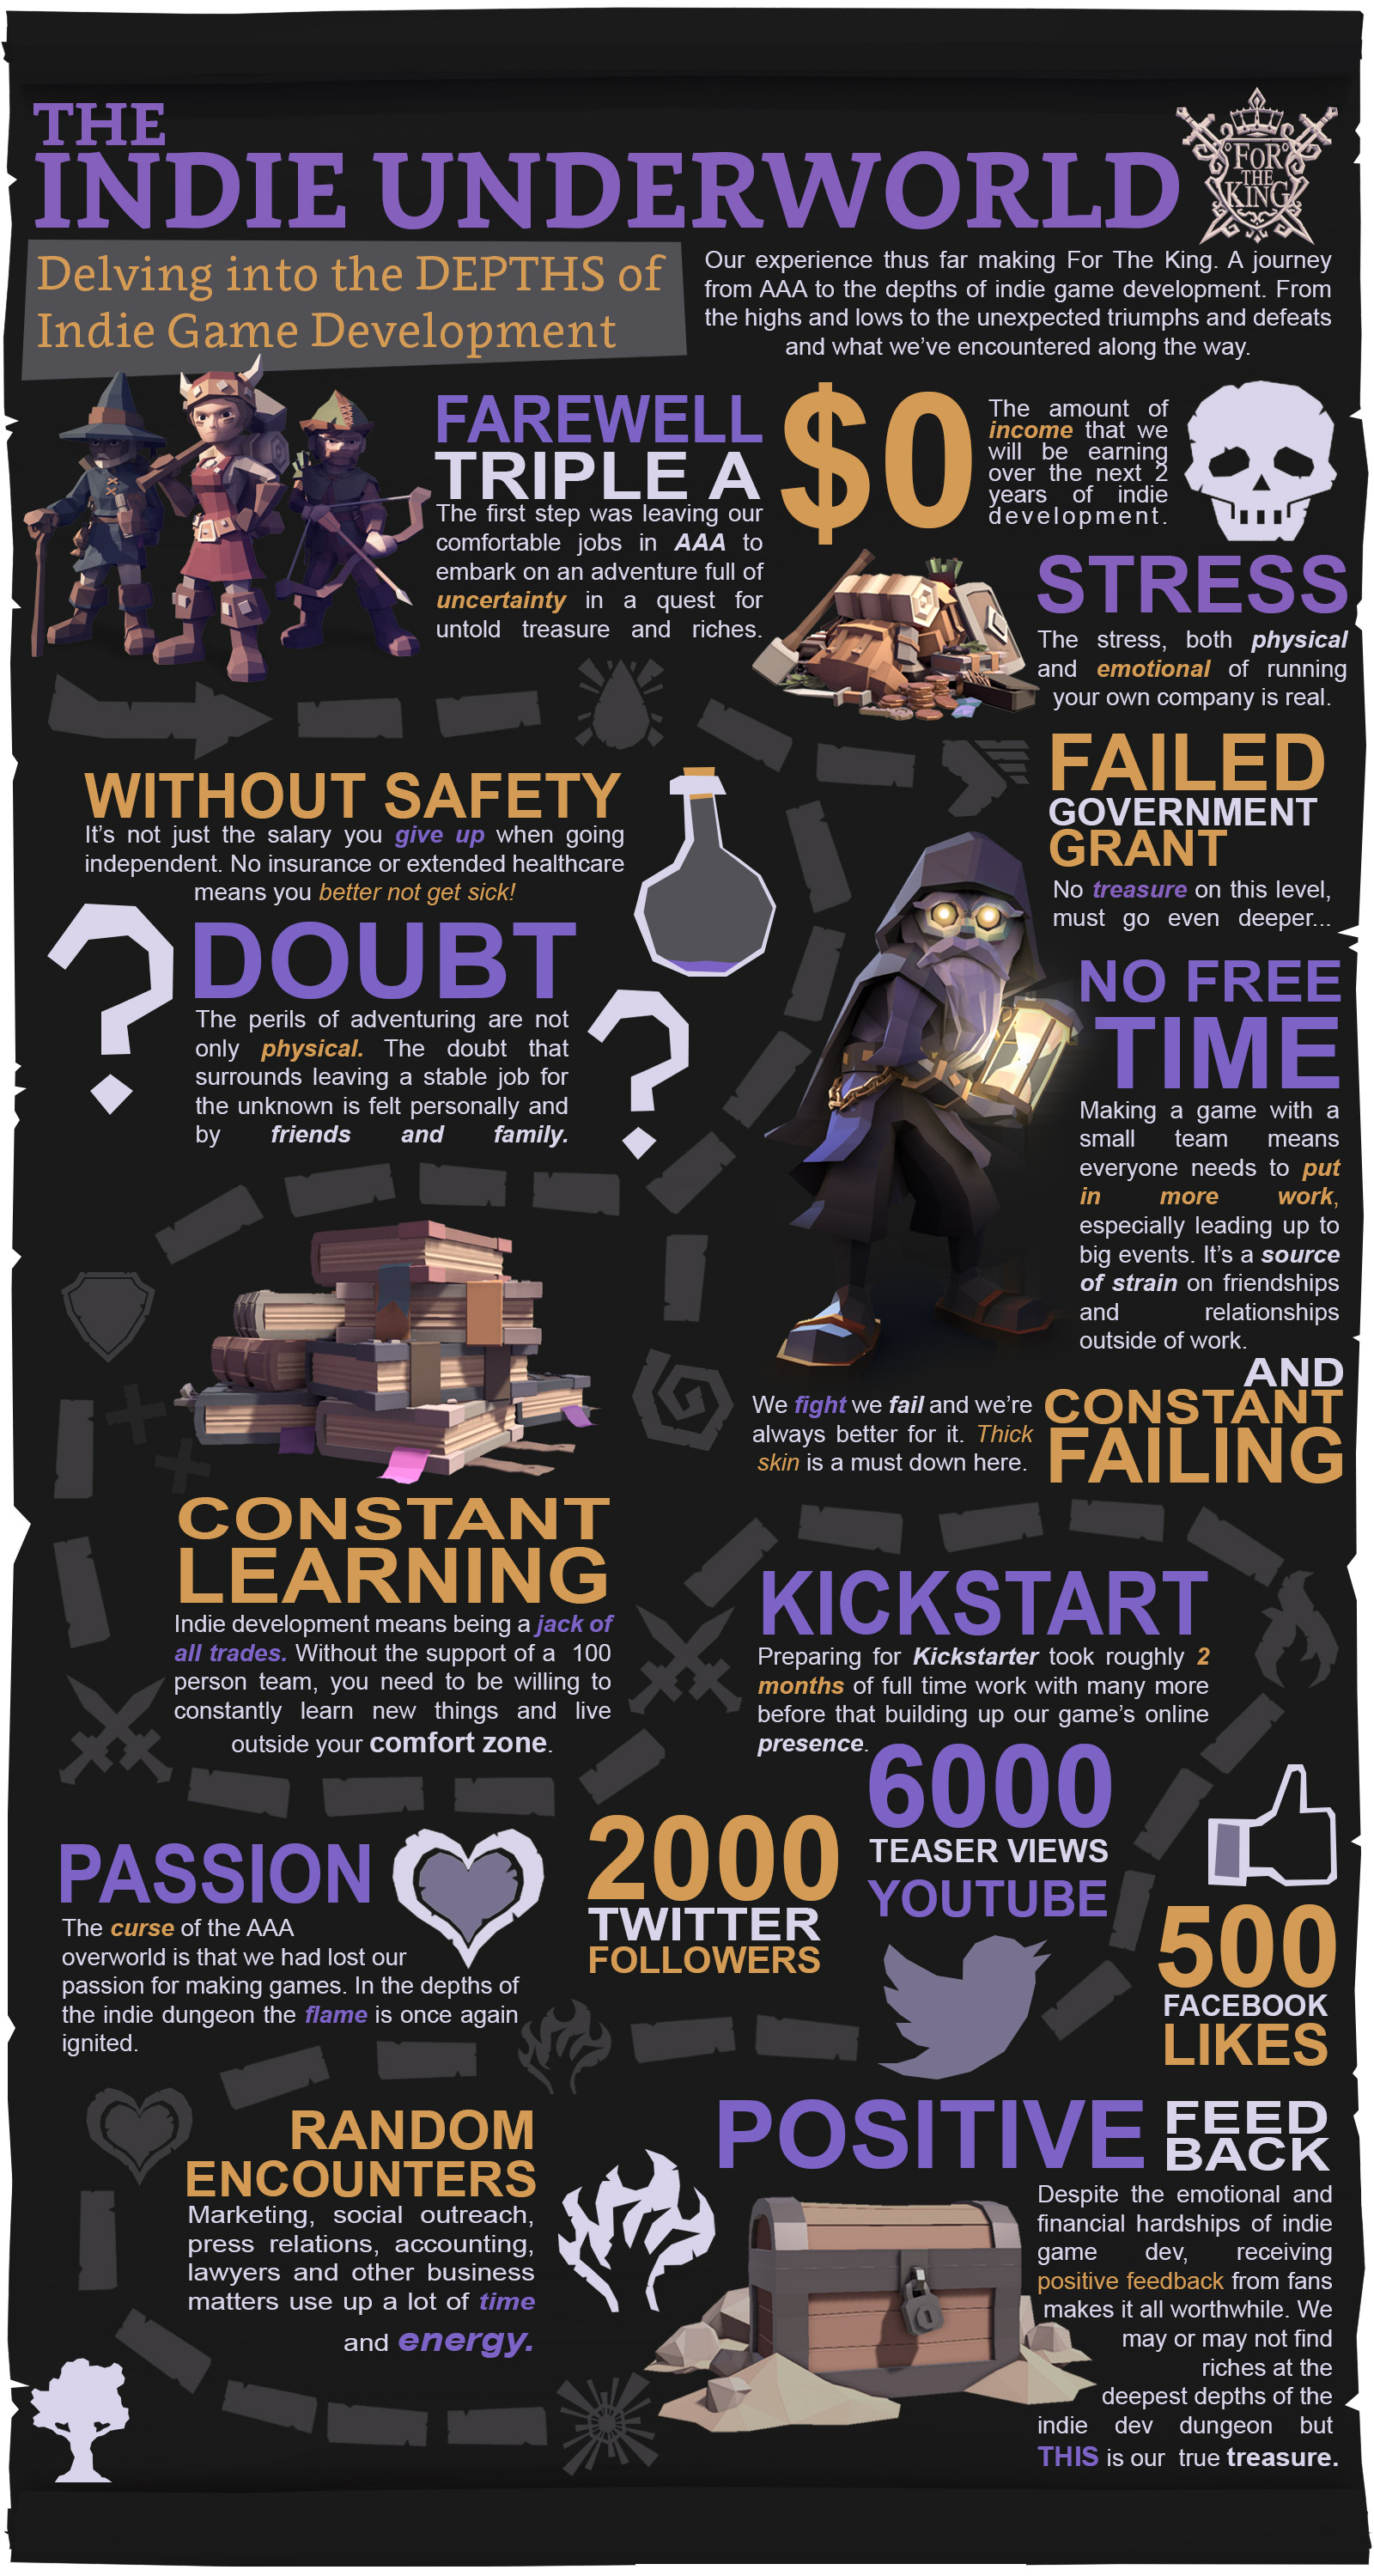 IronOak For The King Infographic